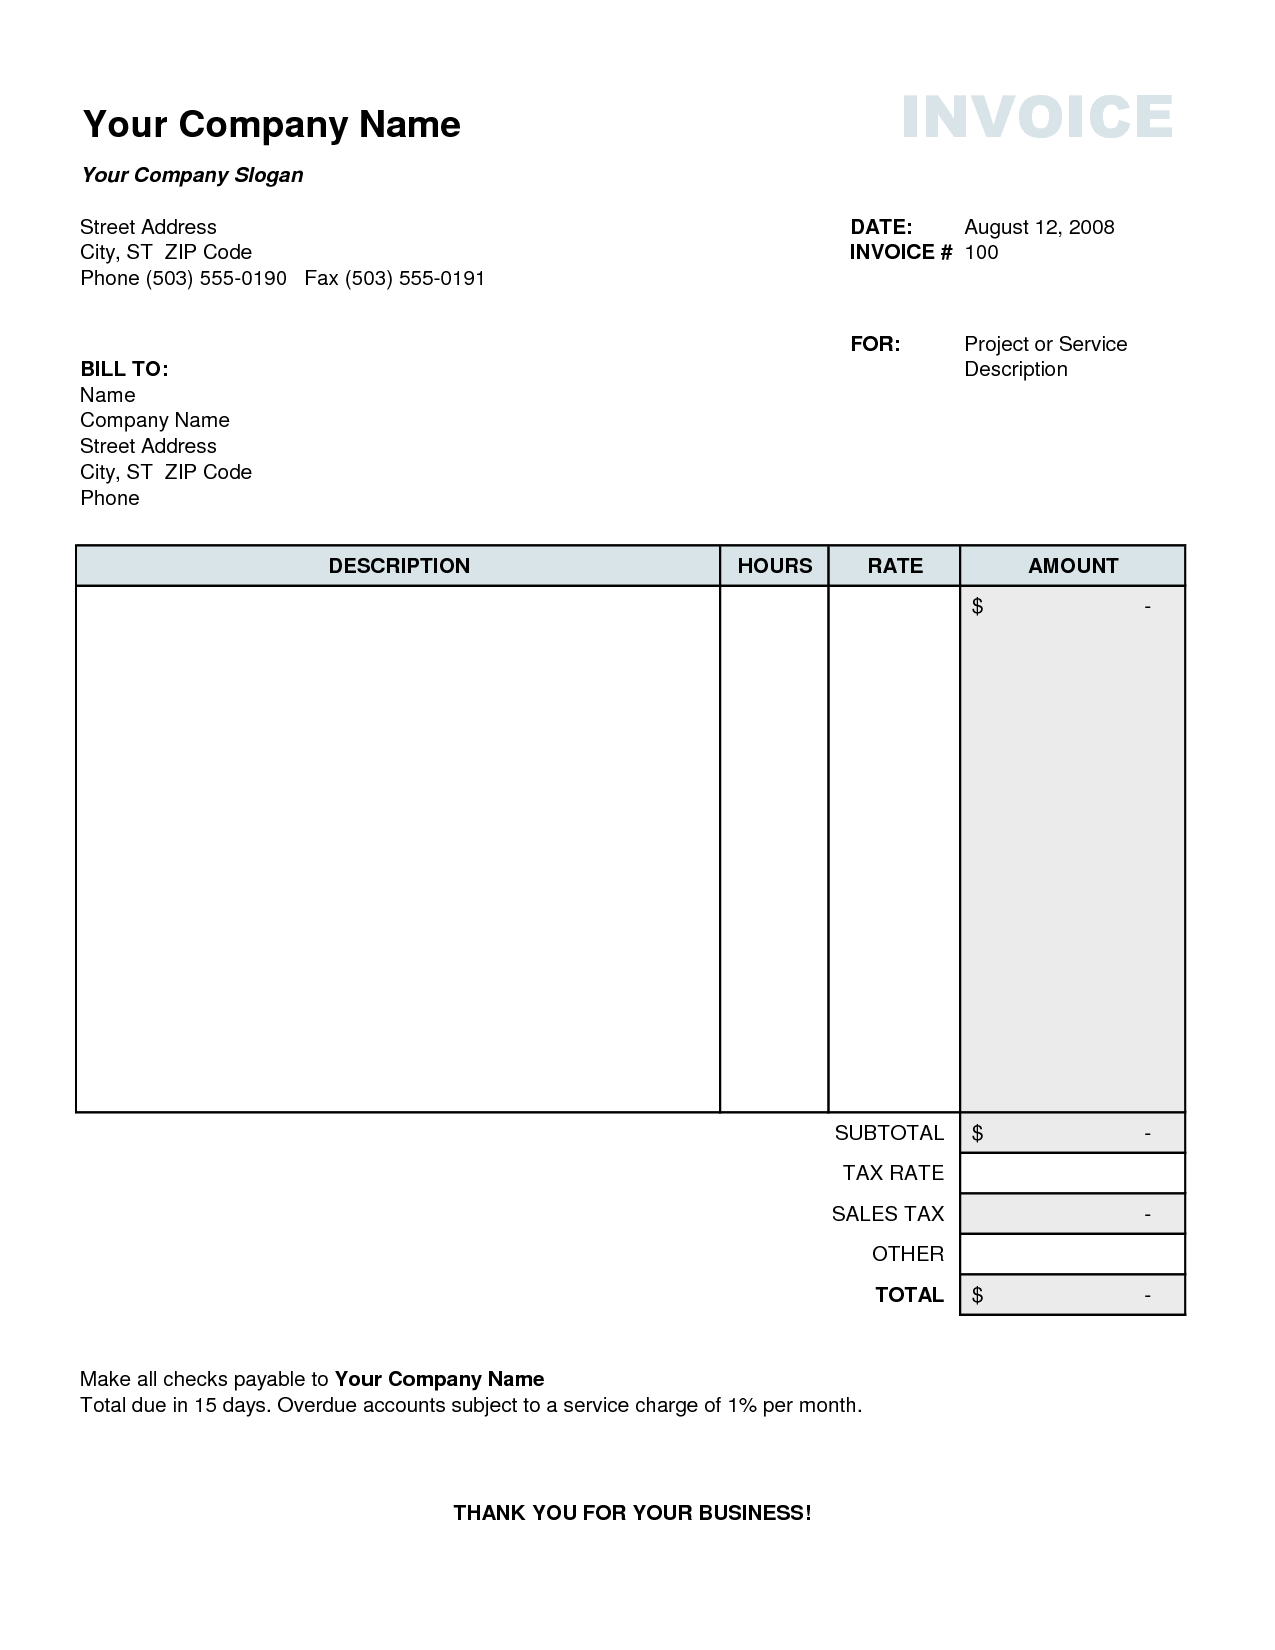 tax invoice template excel invoice example tax invoice template excel tax invoice template excel business format word 294476 v 2007 microsoft sample document discount